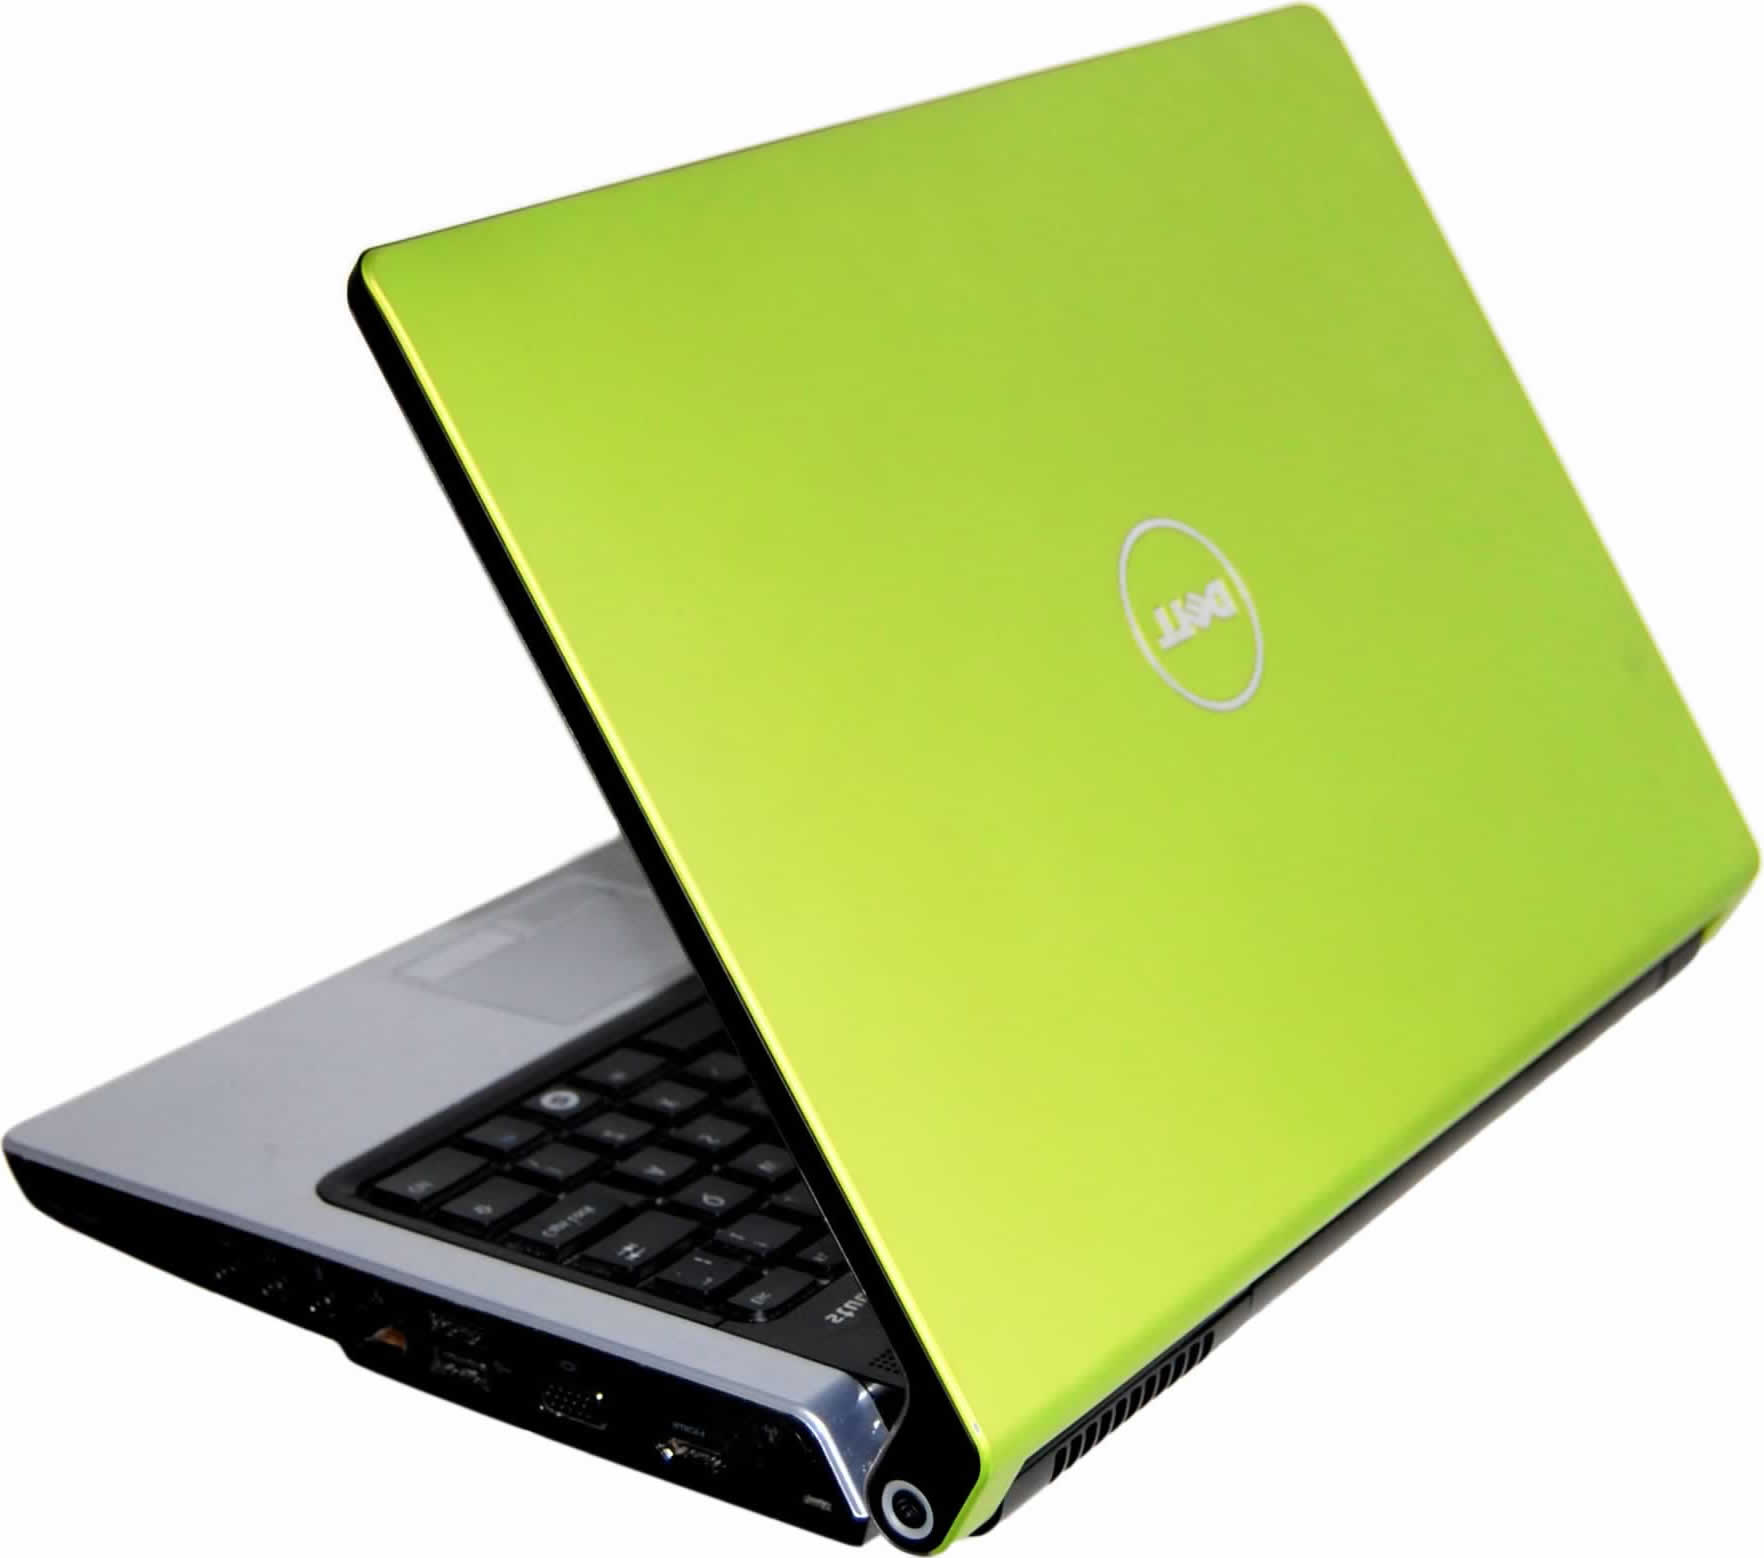 dell_studio_laptop_green.jpg